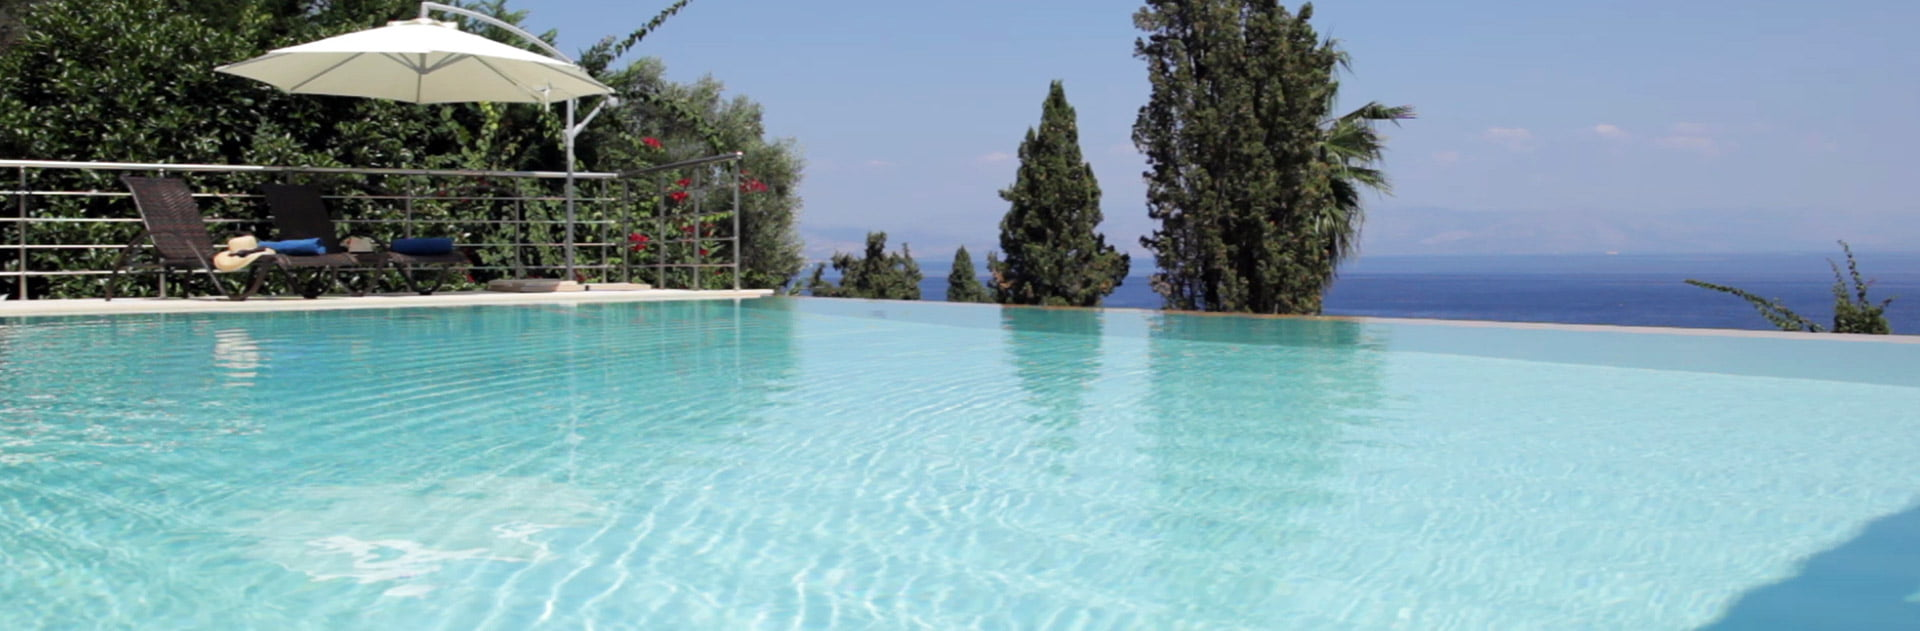 Corfu Luxury Villa Megan 02